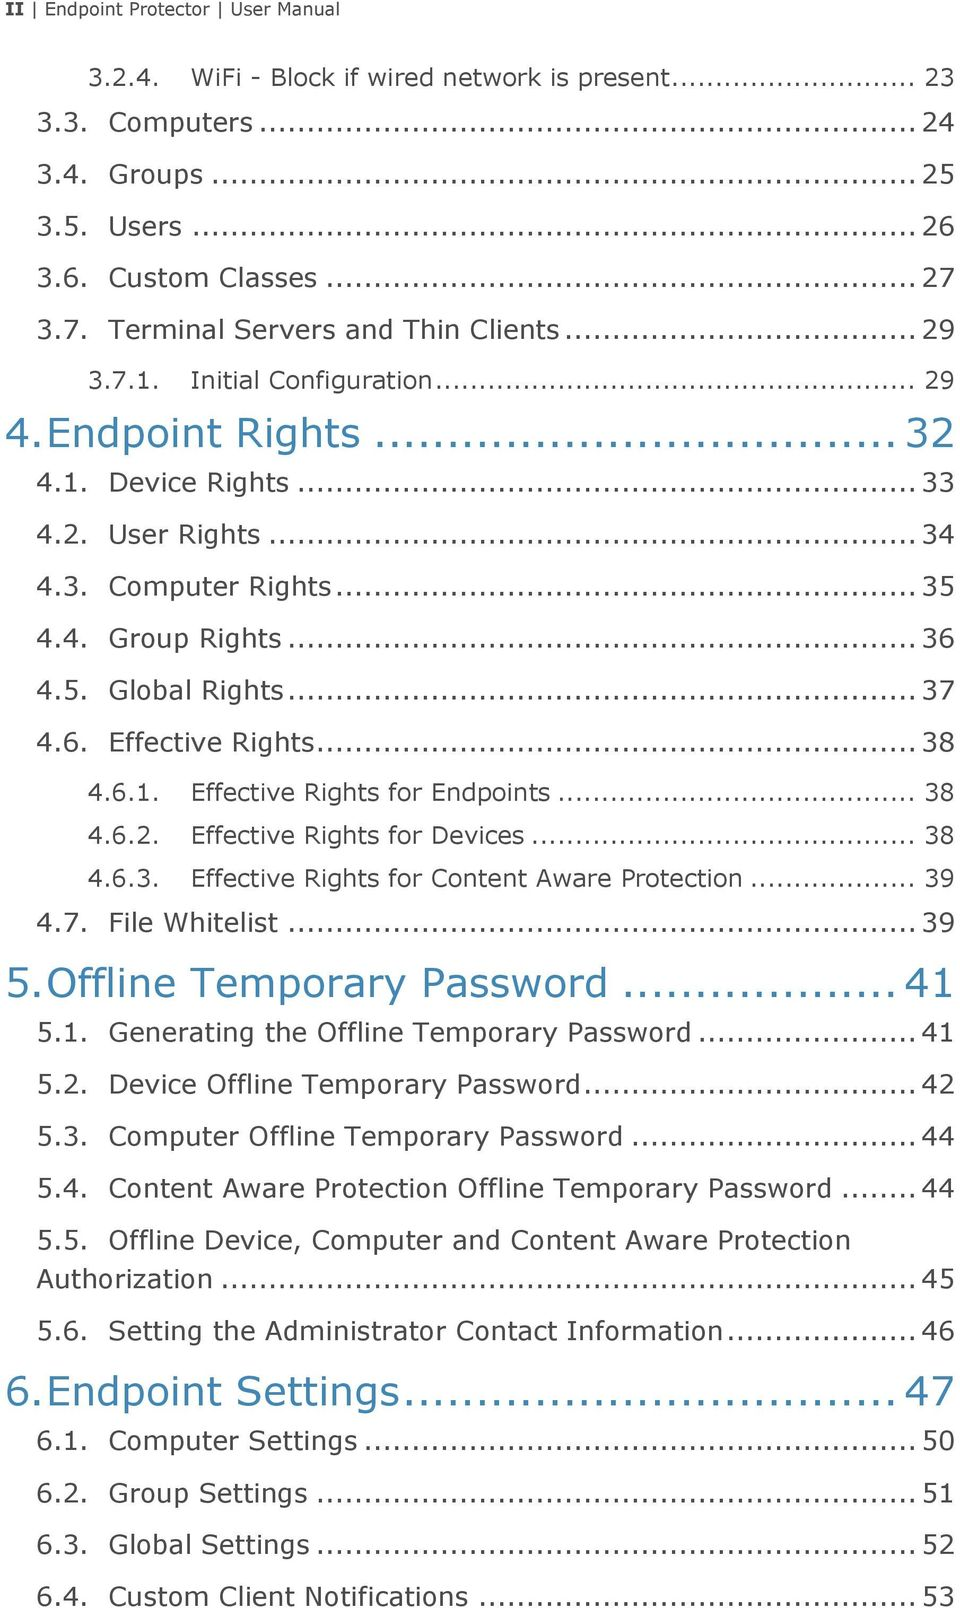 .. 36 4.5. Global Rights... 37 4.6. Effective Rights... 38 4.6.1. Effective Rights for Endpoints... 38 4.6.2. Effective Rights for Devices... 38 4.6.3. Effective Rights for Content Aware Protection.